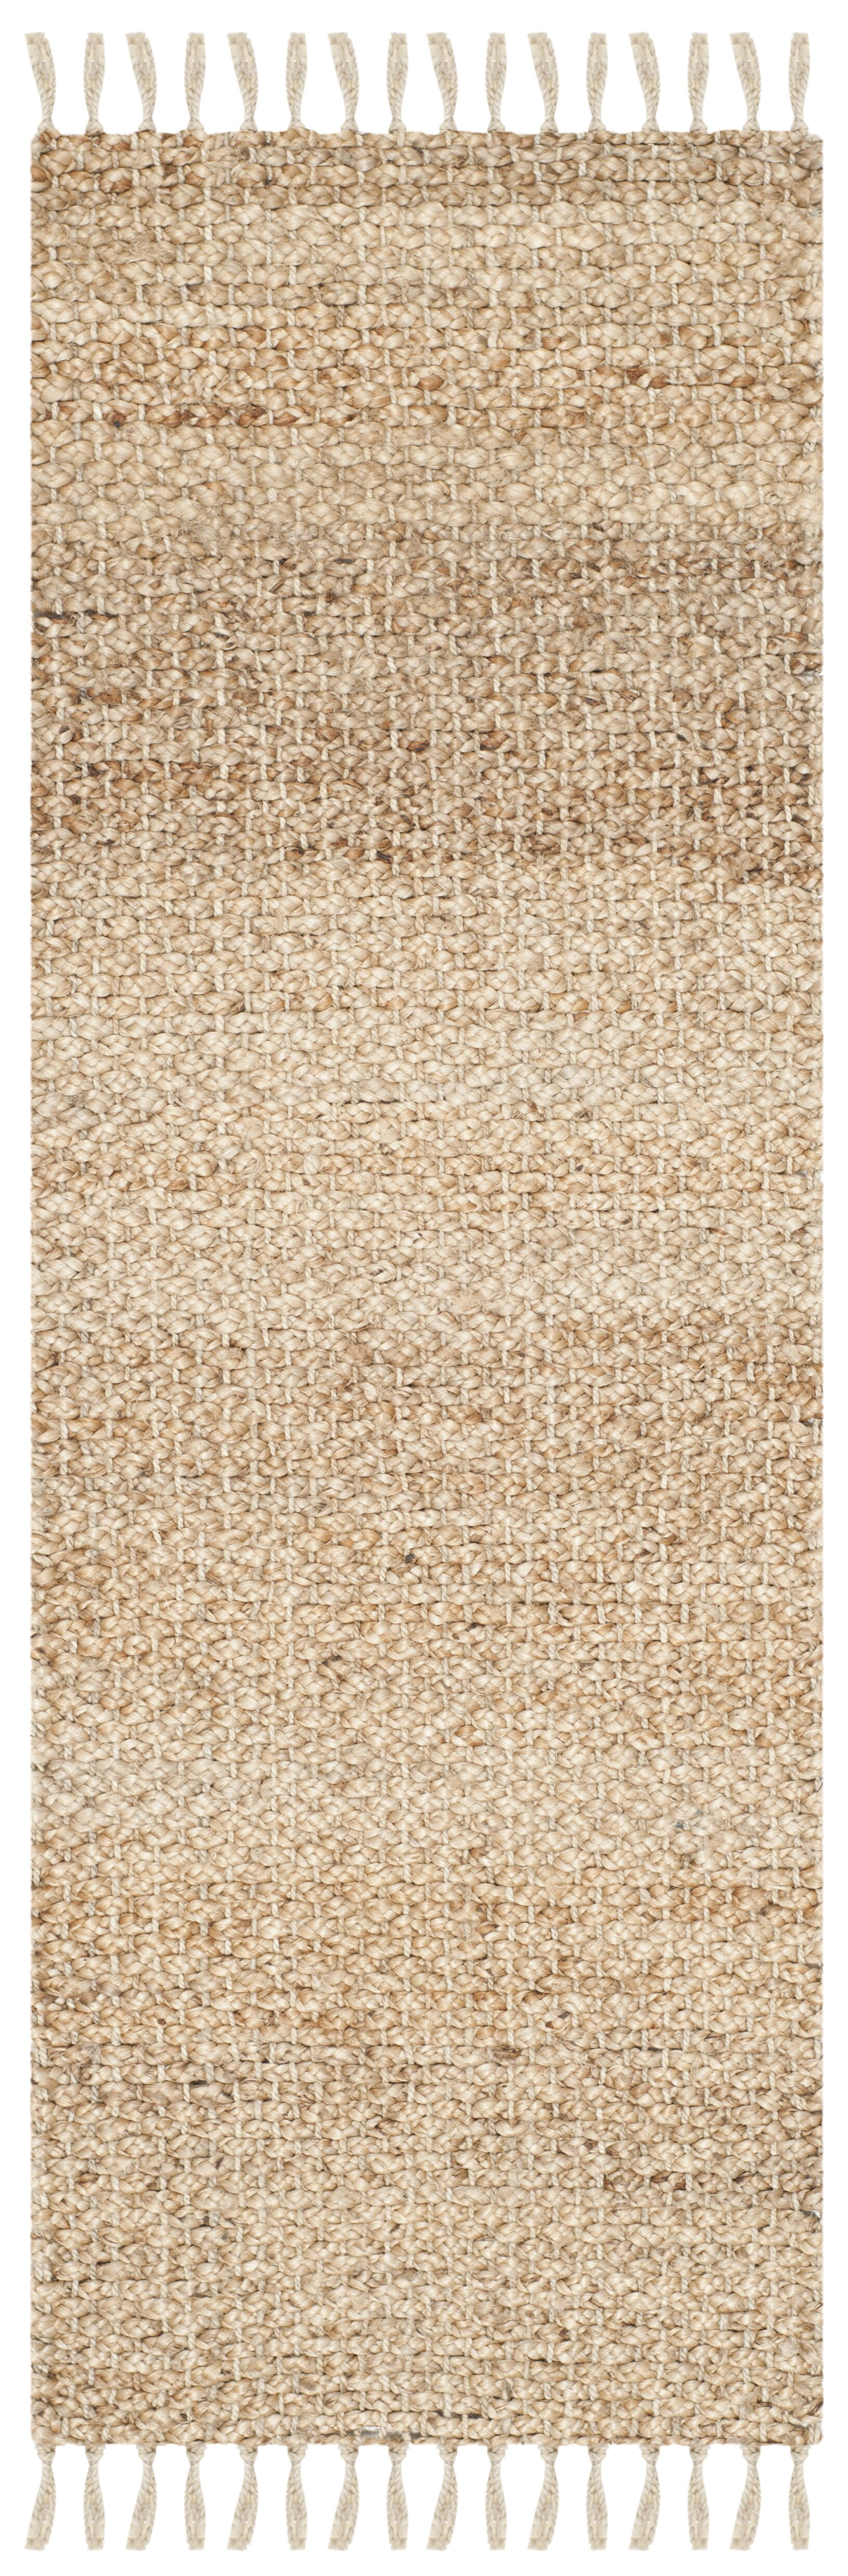 Liza Hand-Woven Natural Area Rug Rug Size: Runner 2'3